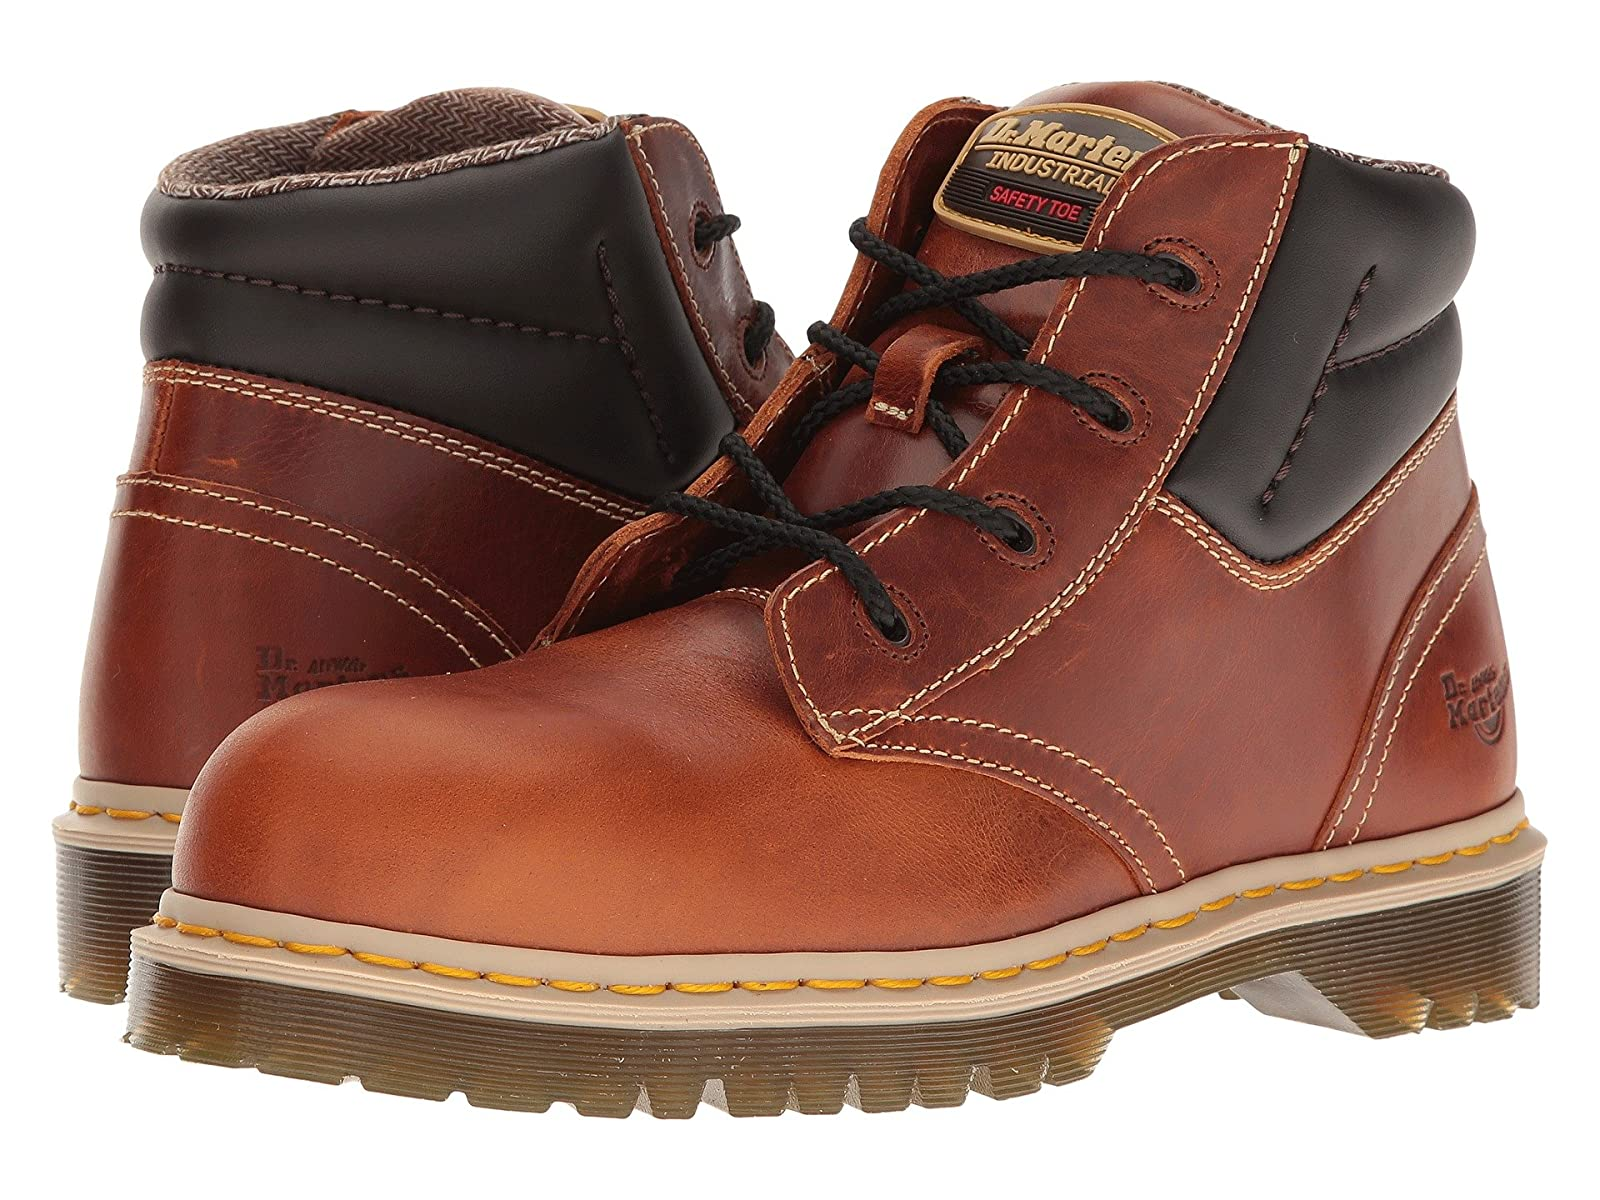 Dr. Martens Icon 7B09Cheap and distinctive eye-catching shoes